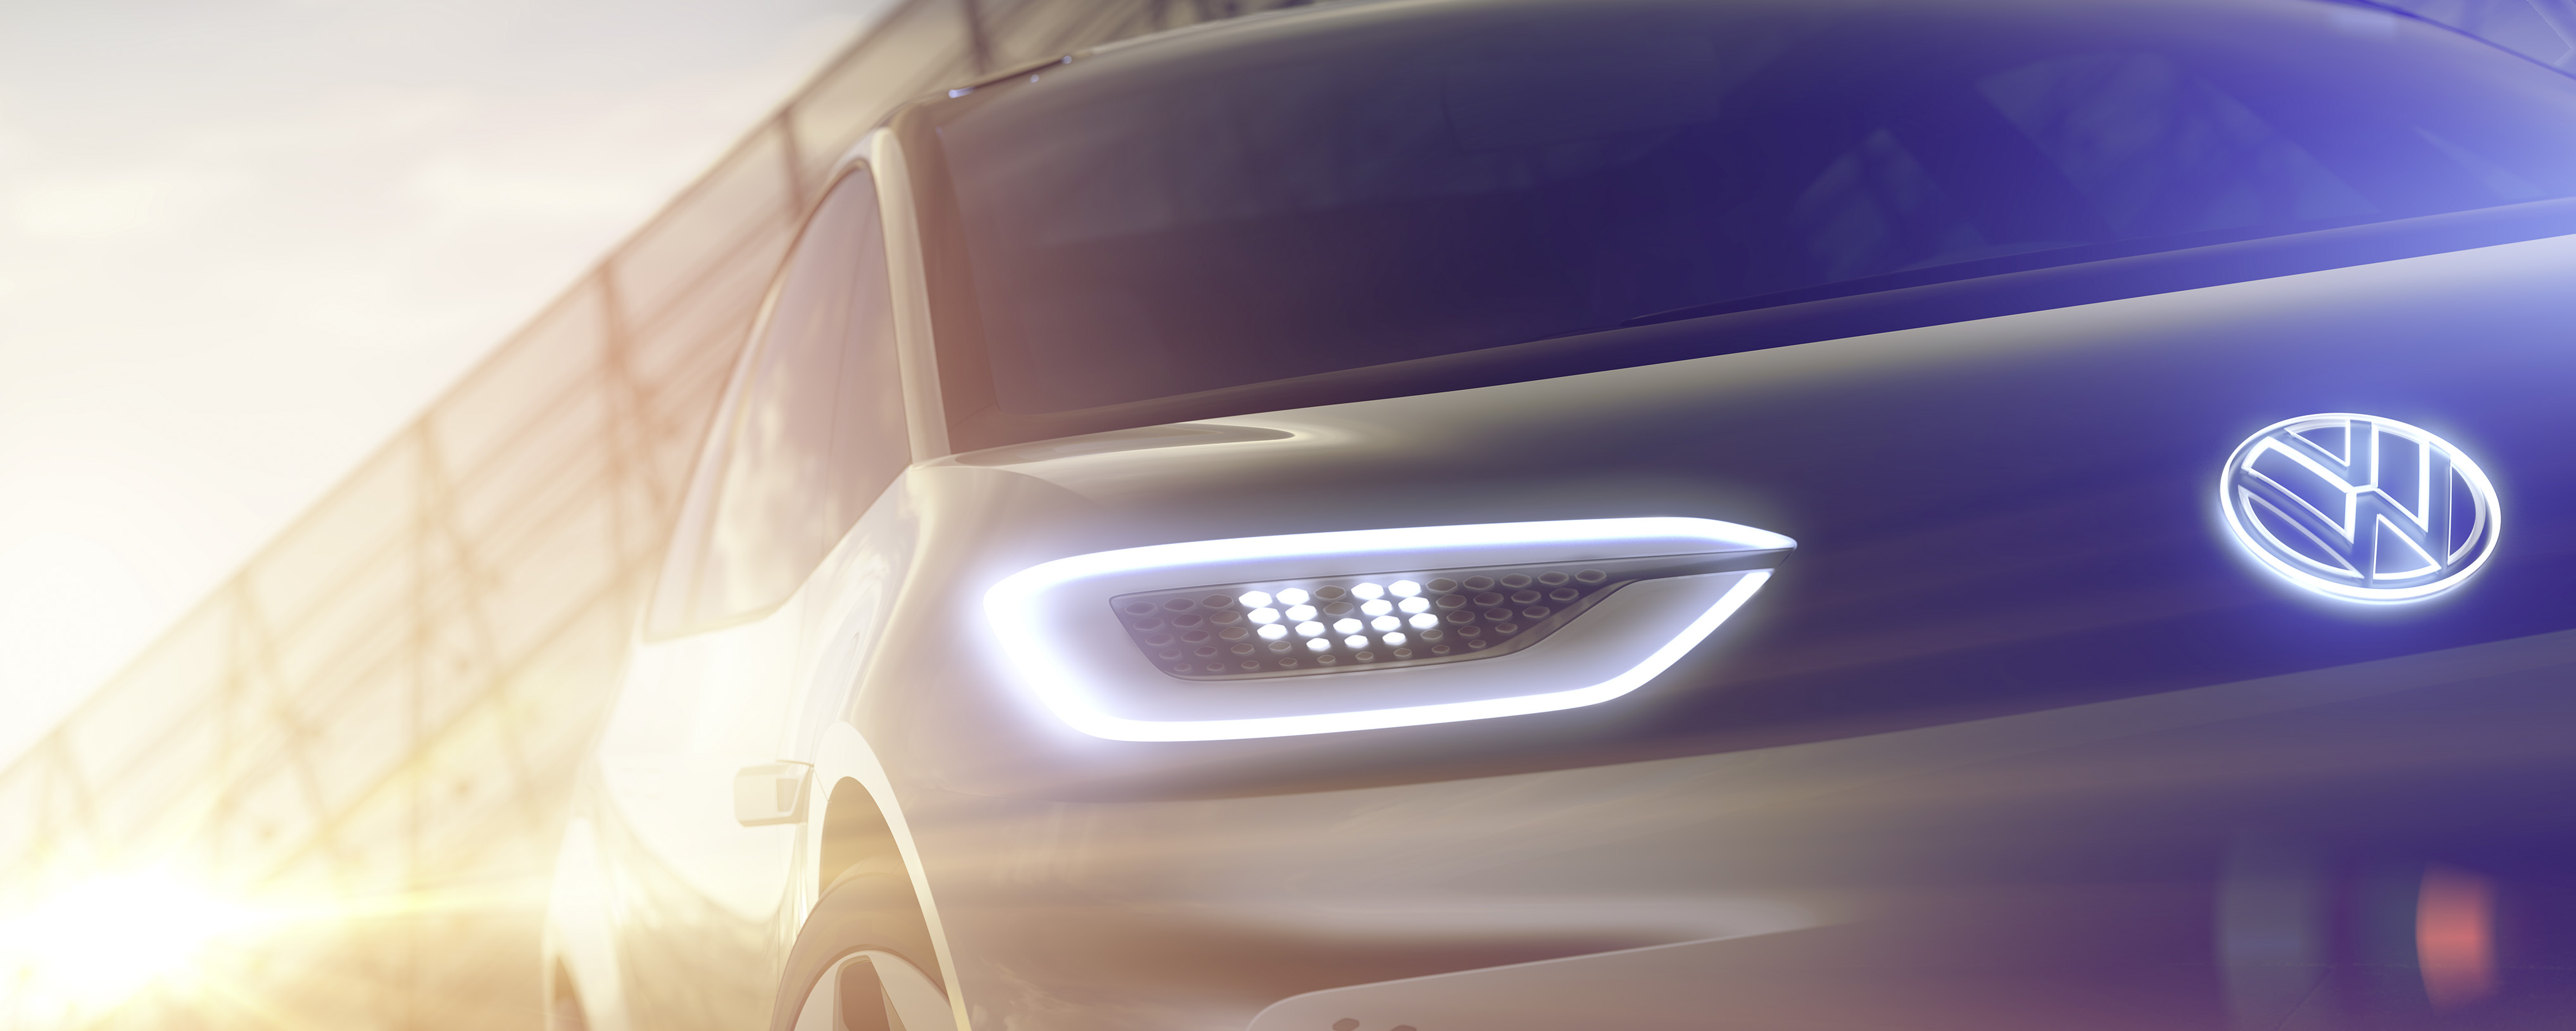 Volkswagen releases teaser photos of the electric concept car it plans to unveil at the 2016 Paris Motor Show.